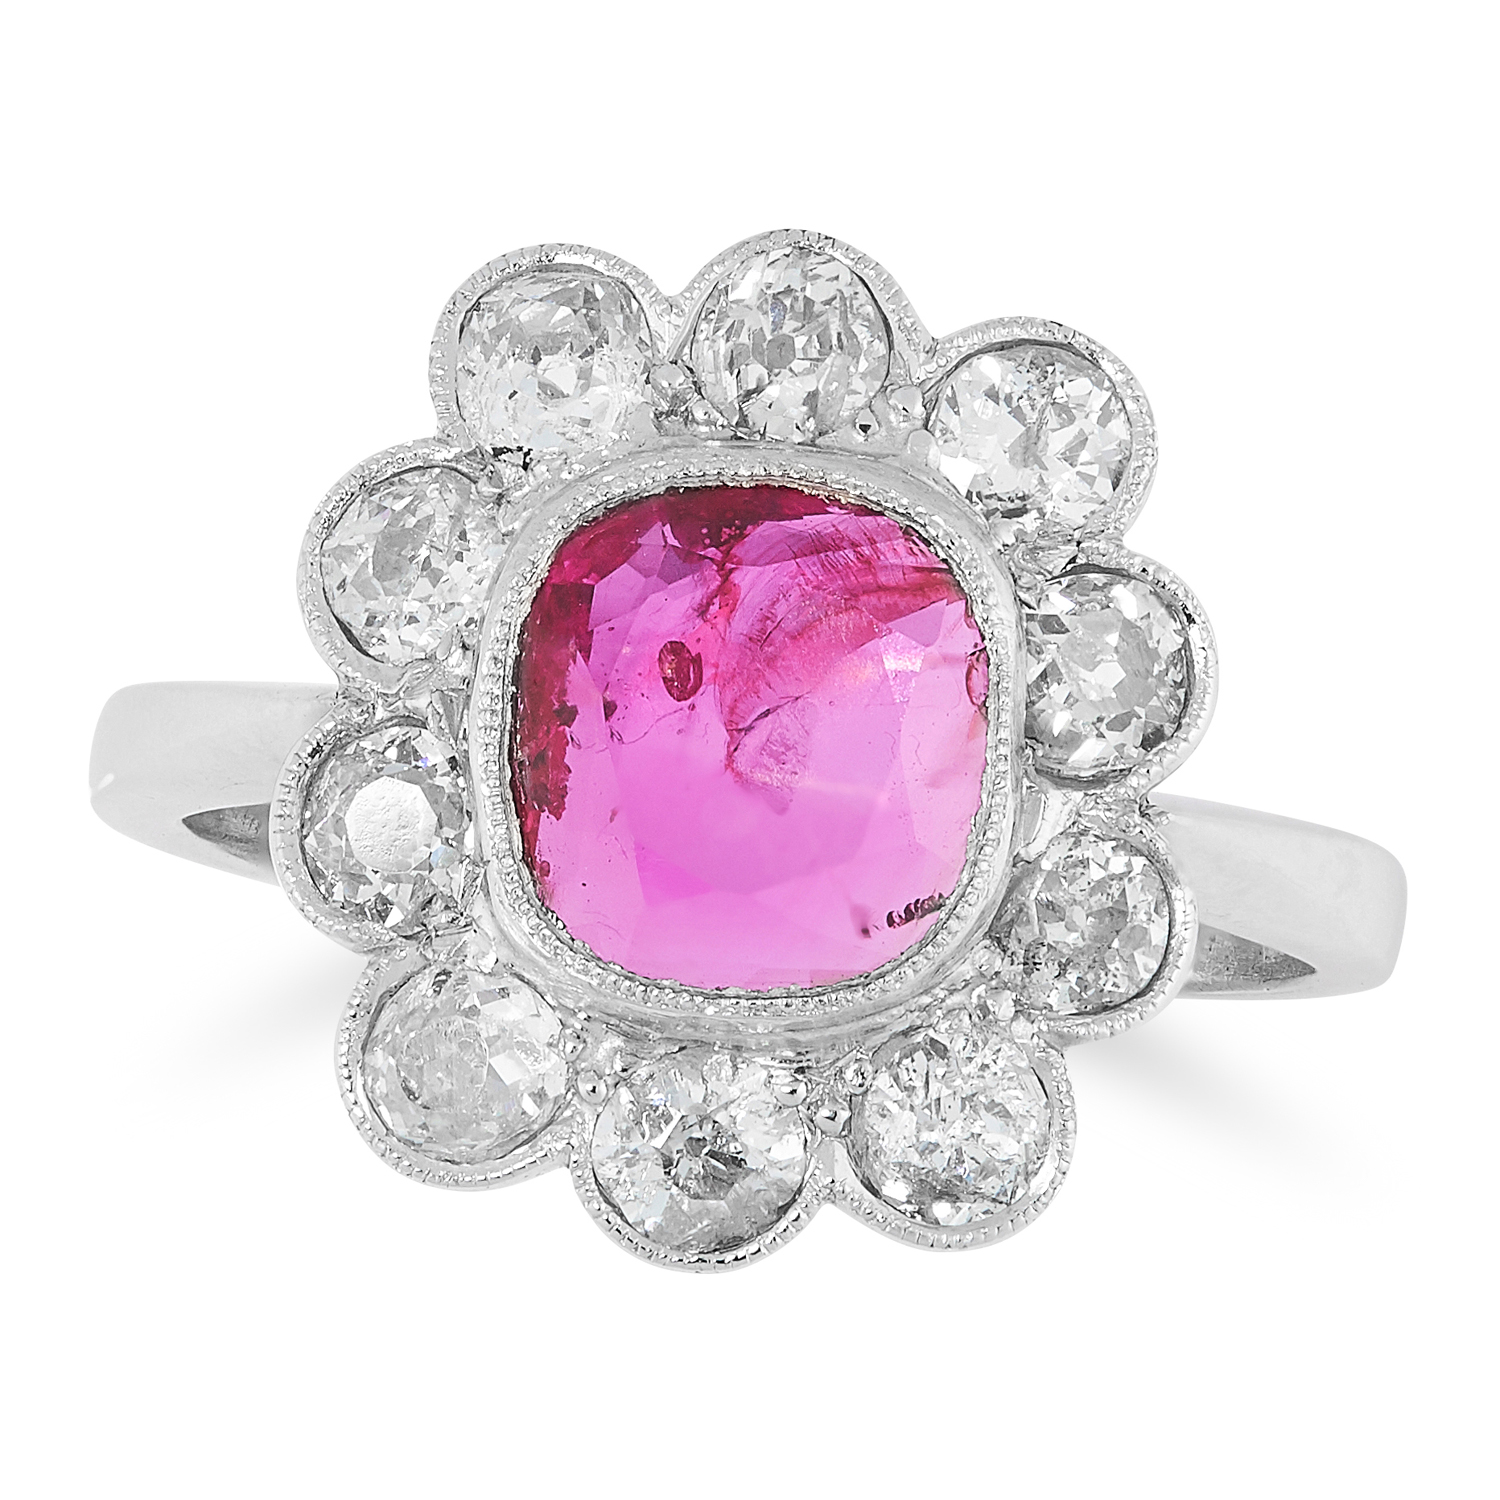 Lot 8 - A BURMA NO HEAT RUBY AND DIAMOND RING CIRCA 1950 in platinum, set with a modified cushion cut ruby